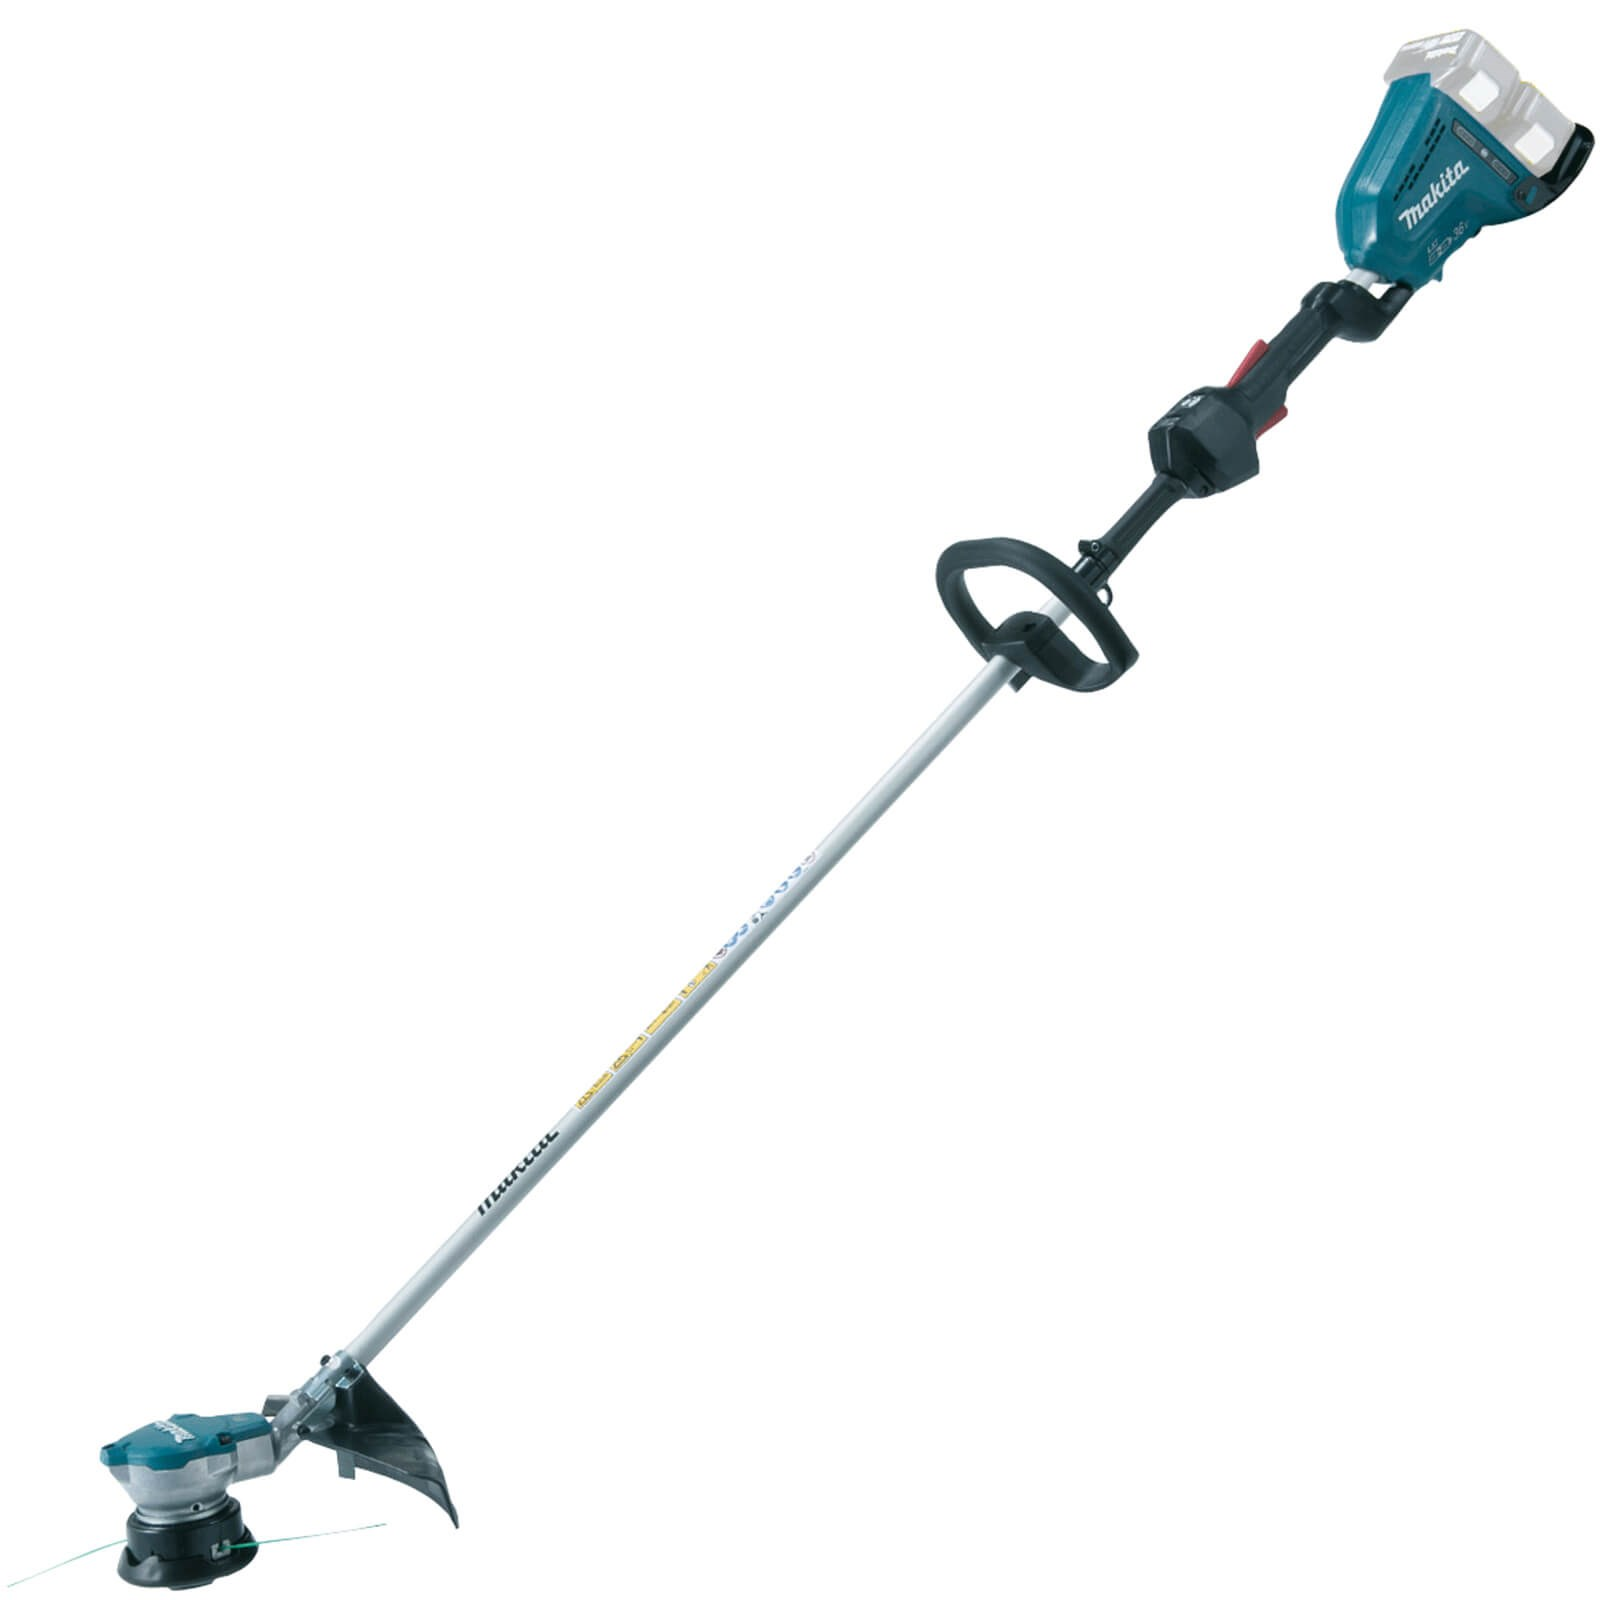 Makita Dur364l Twin 18v Lxt Cordless Gr Trimmer